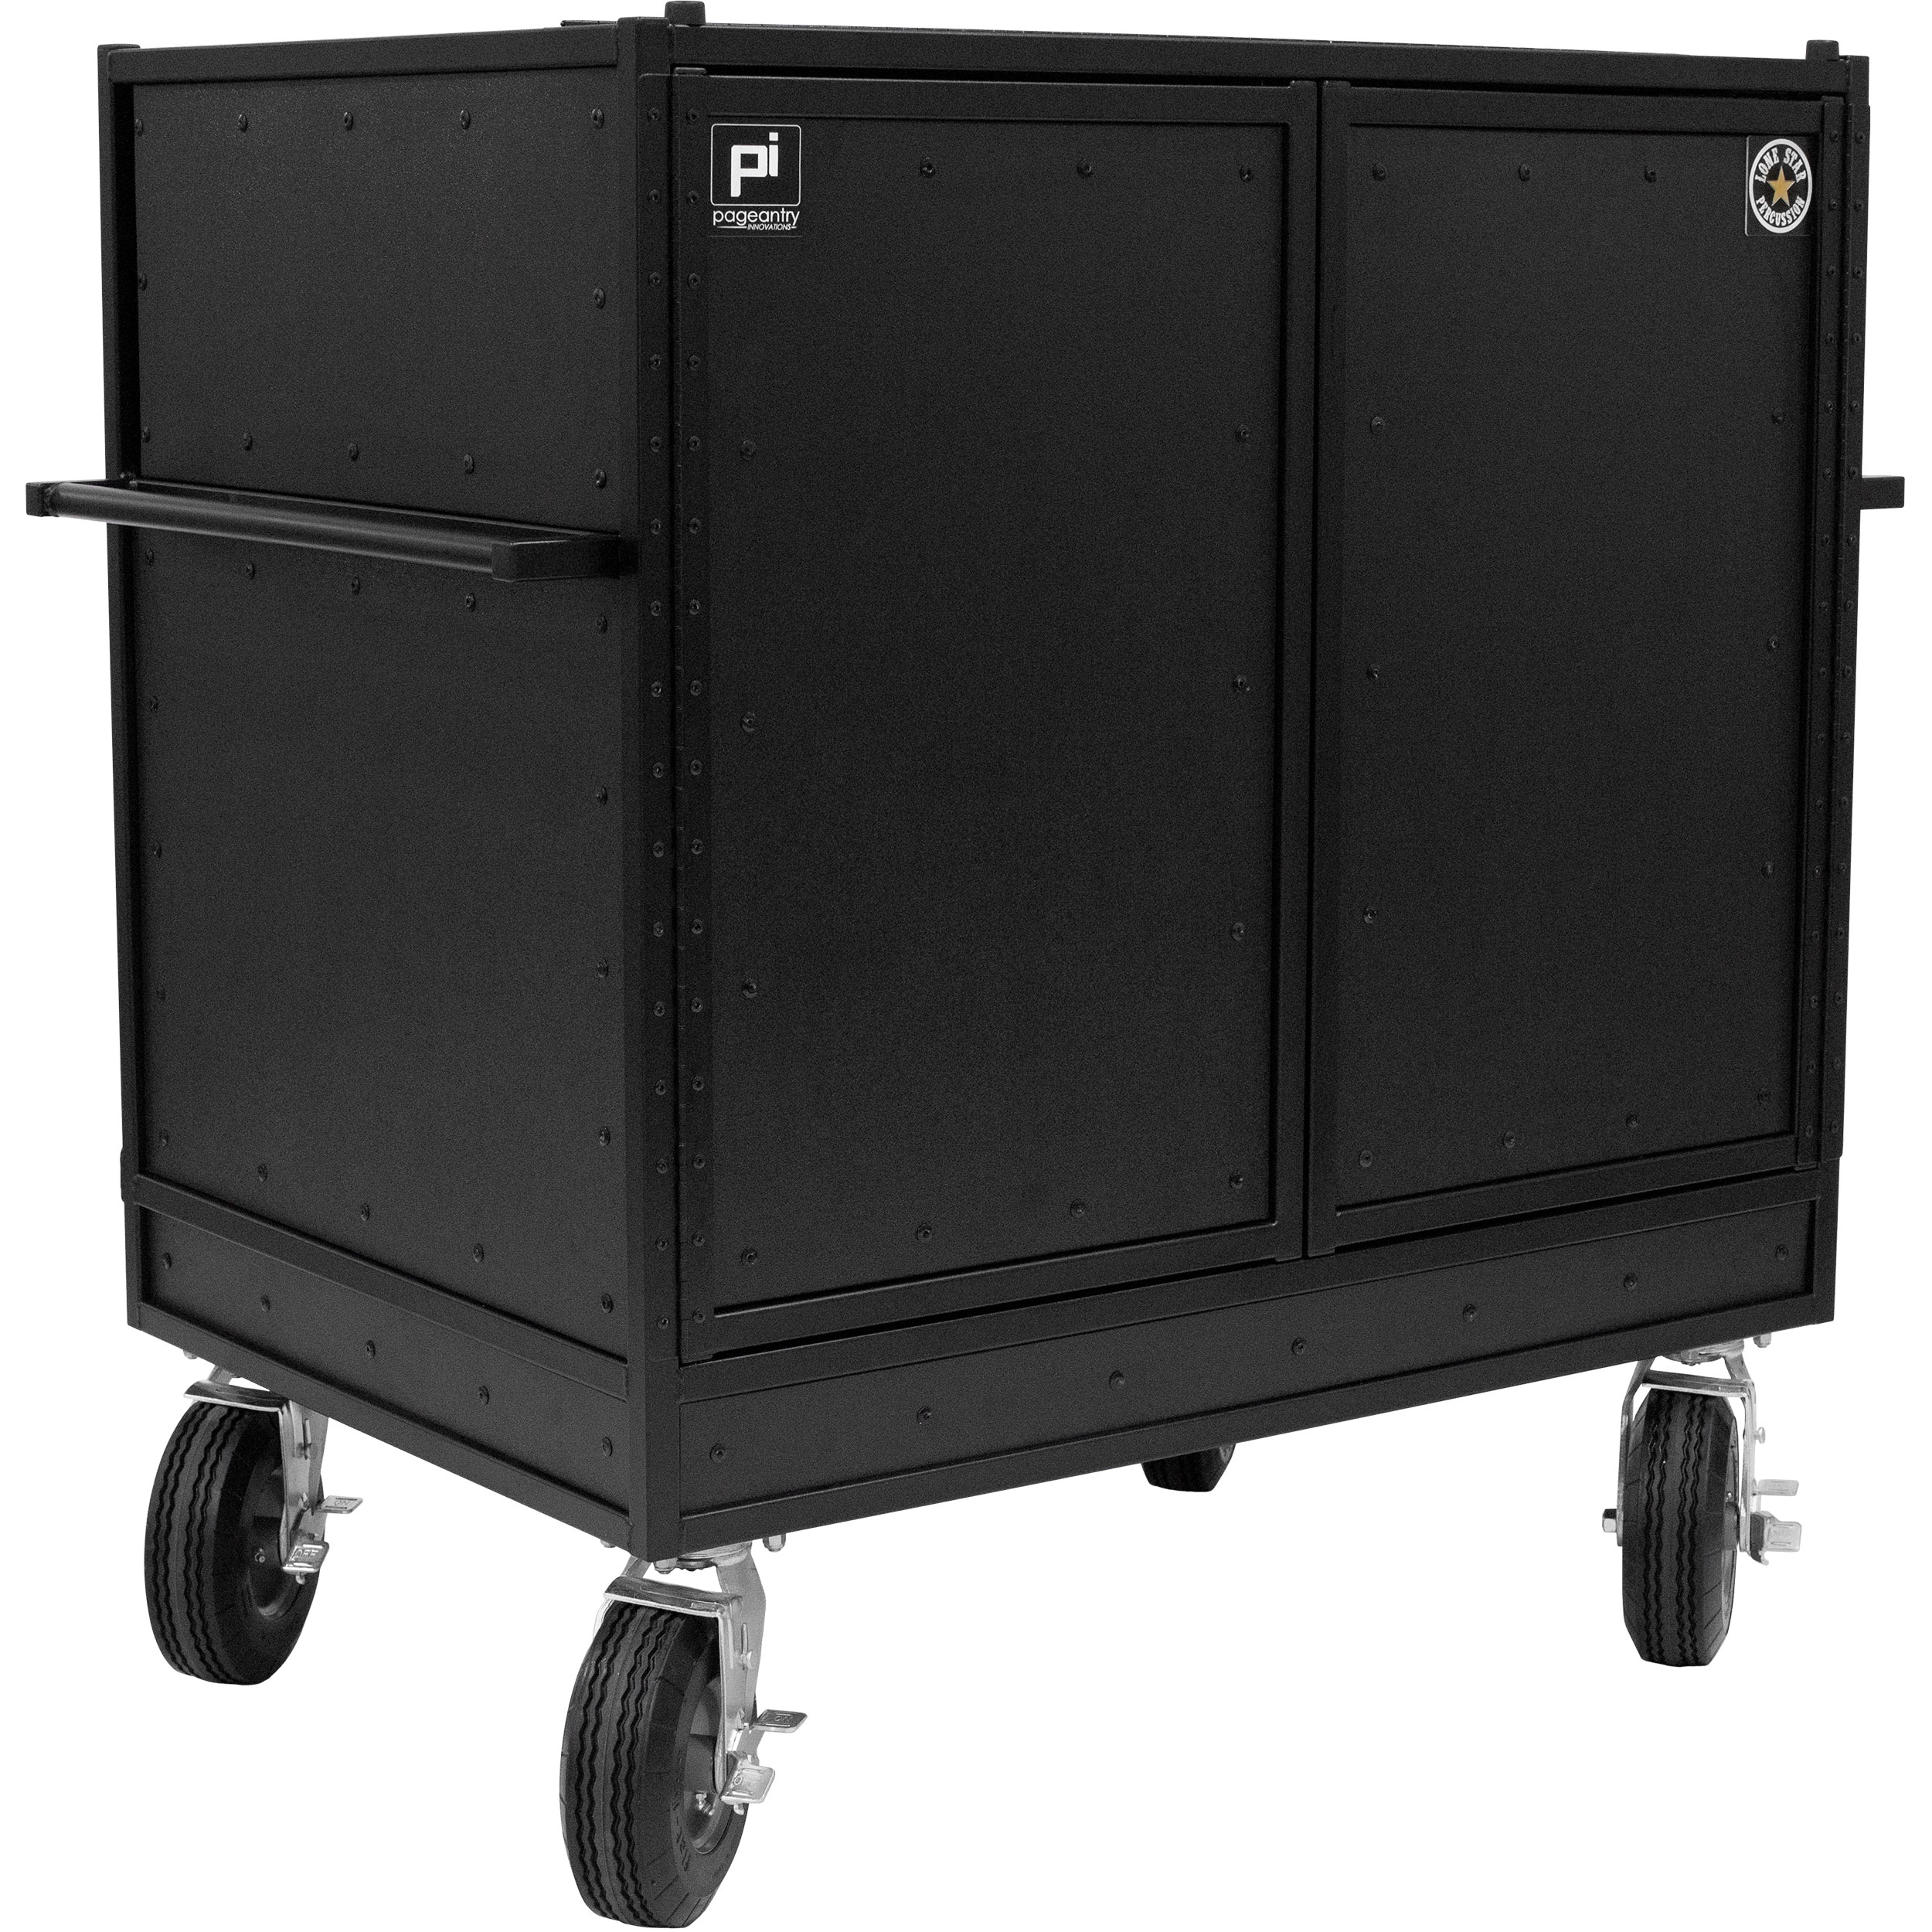 Pageantry Innovations LSP Exclusive Stealth Series Double Mixer Cart